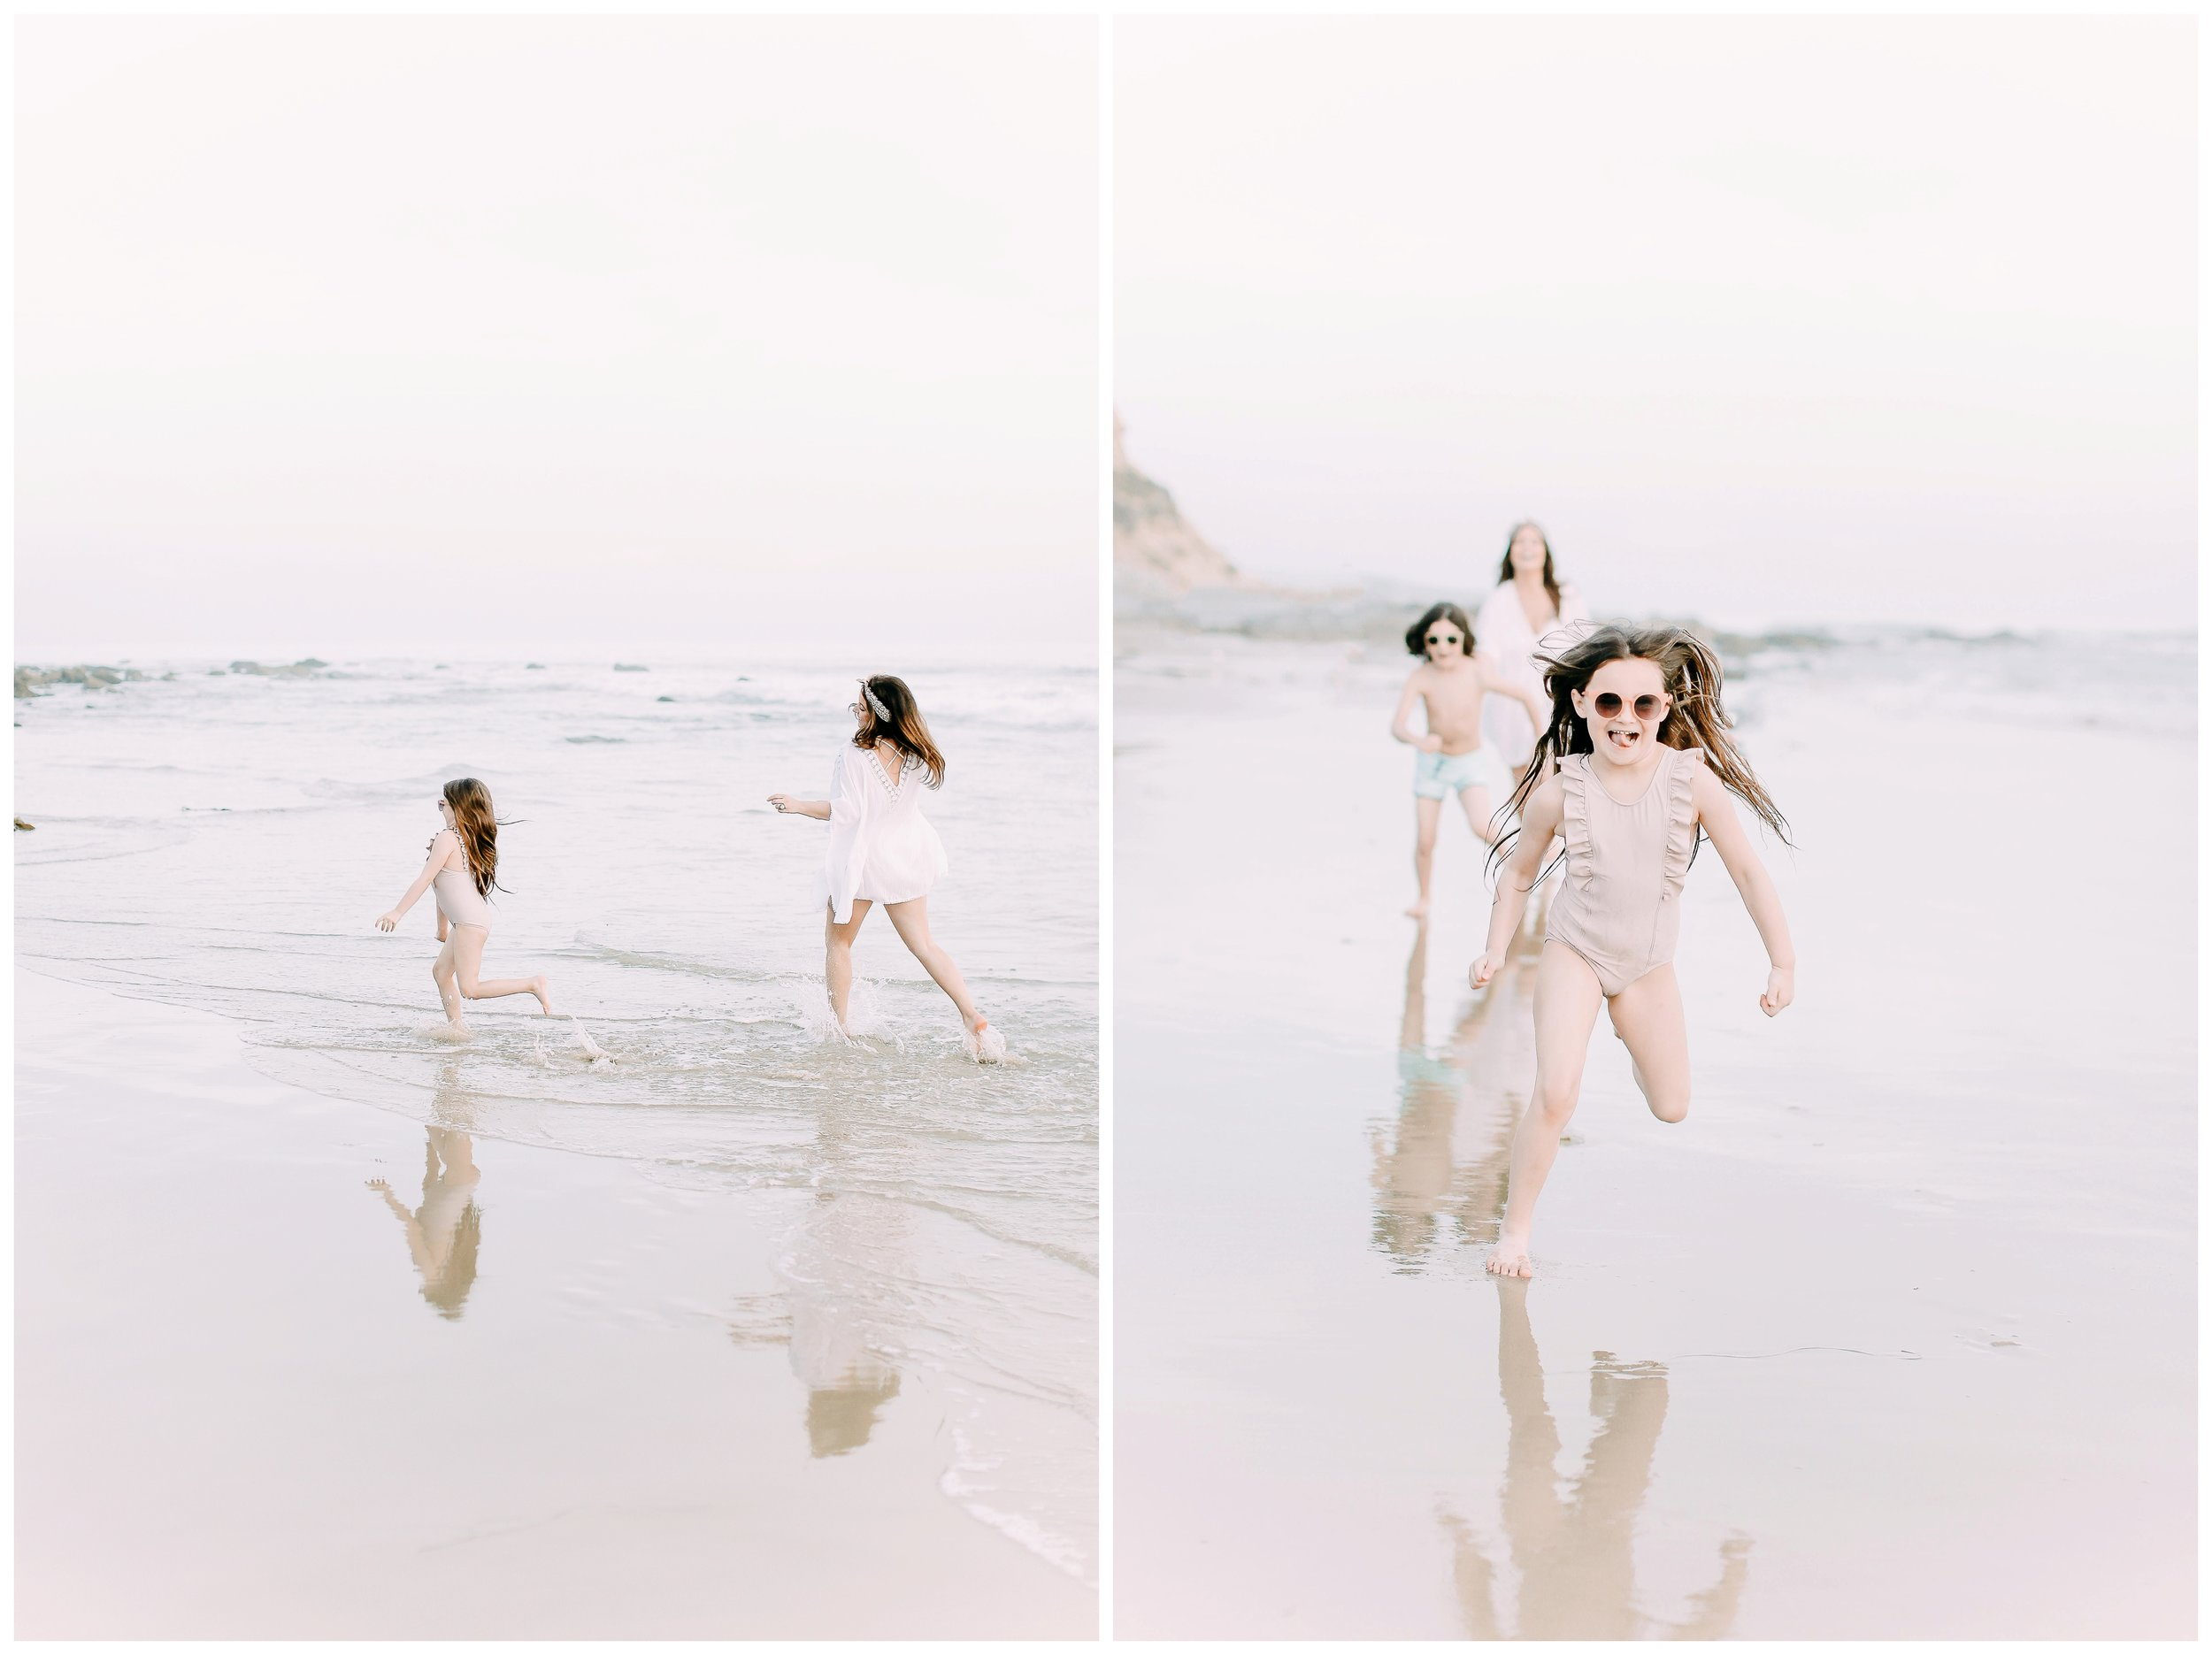 Crystal-Cove-State-Beach-Motherhood- Session-Crystal-Cove-Newport-Beach-Family-Photographer-Crystal-Cove-Minnow-Swim-Cori-Kleckner-Photography-Orange-County-Vacation-Family-Photos-Session-_0866.jpg